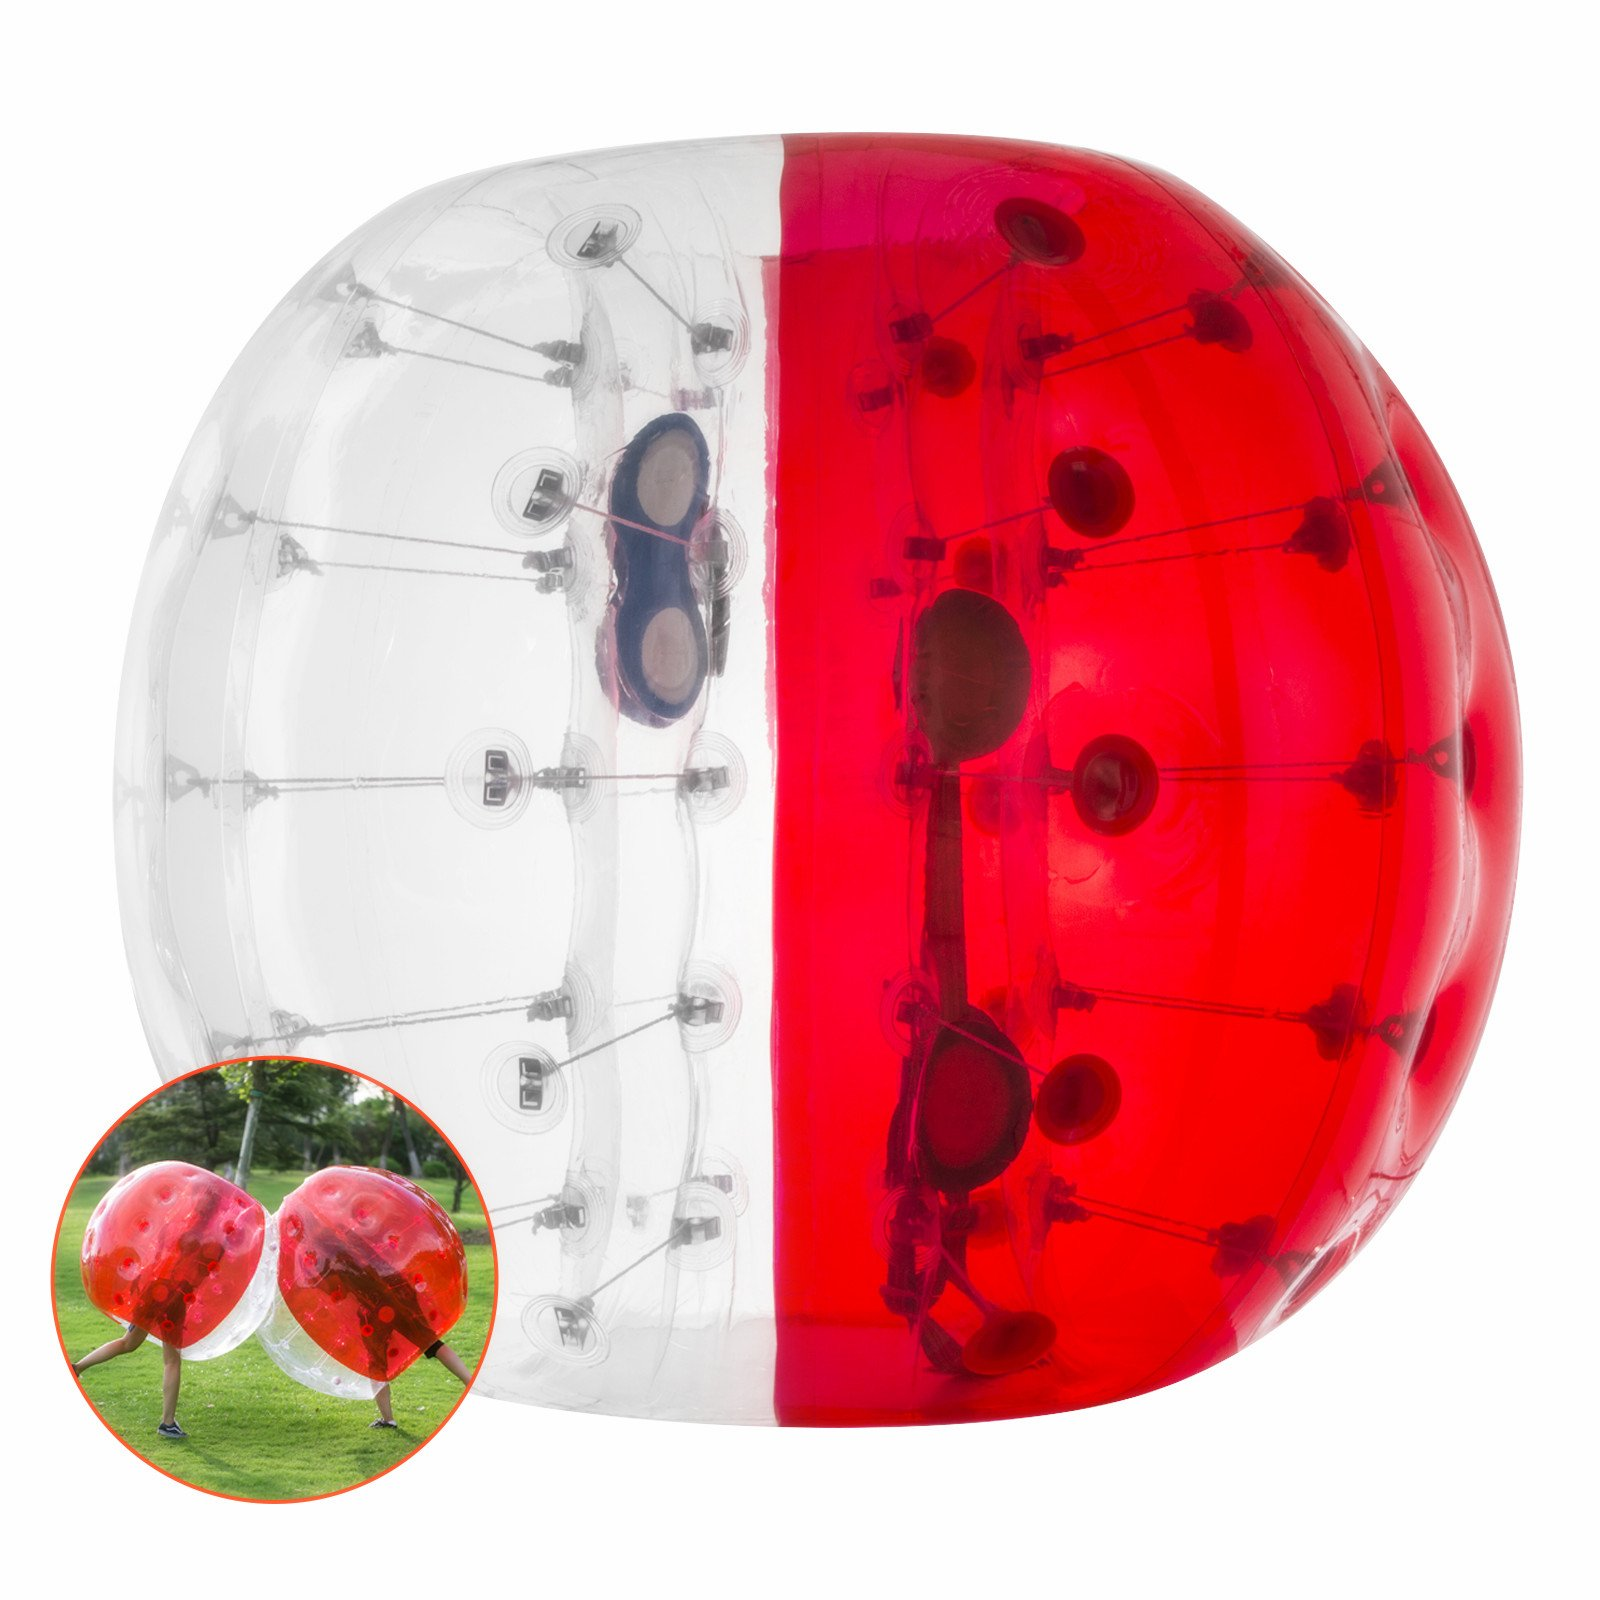 BestEquip Inflatable Bubble Soccer Bumper Ball 4ft/ 5ft for Adult Giant Human and Child Outdoor Inflatable Ball (Red and Transparent1, 5ft)